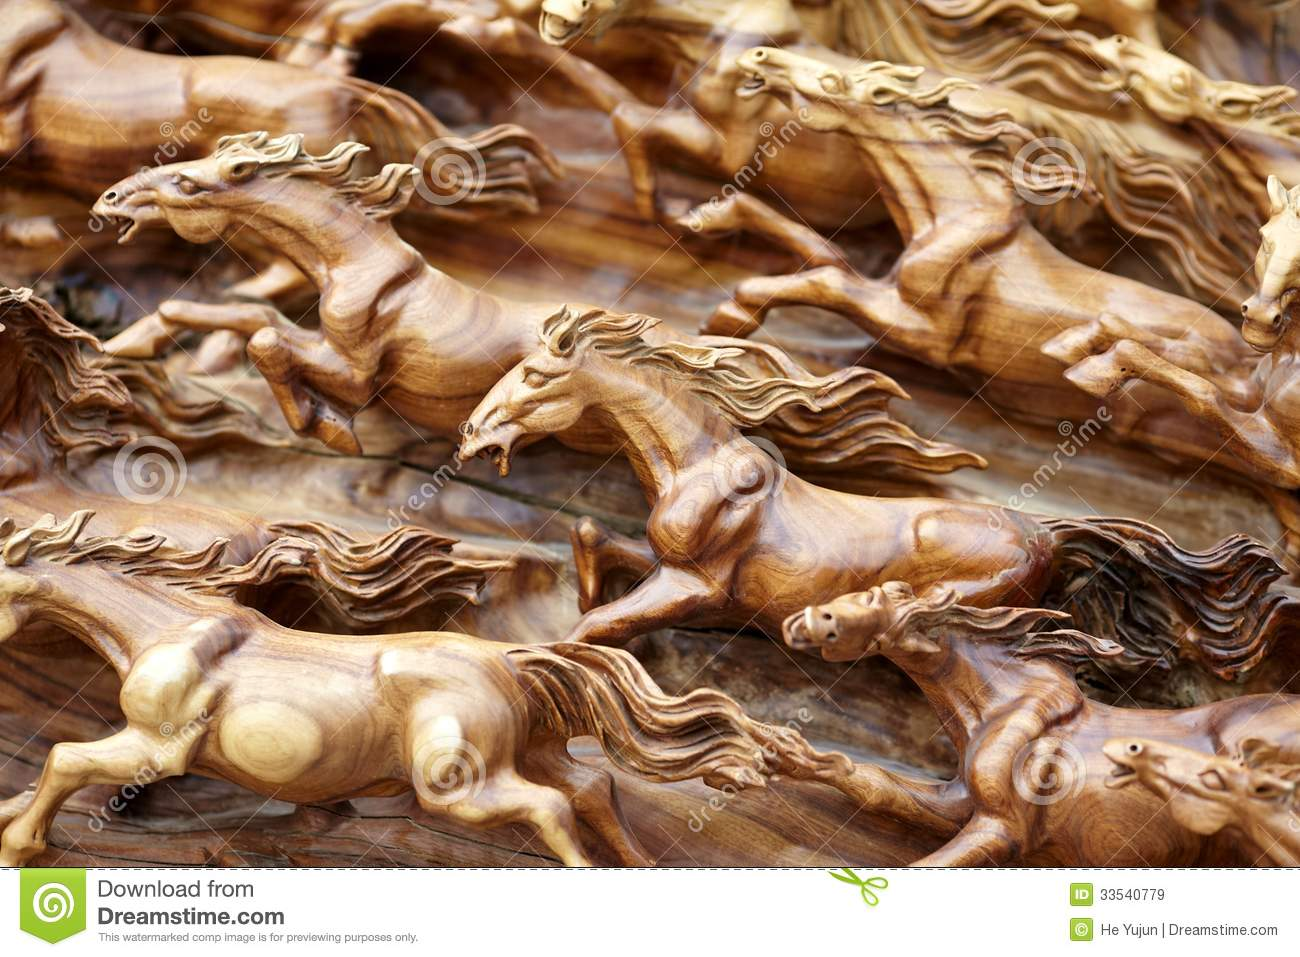 Horse wood carve on piece of big wood trunk.